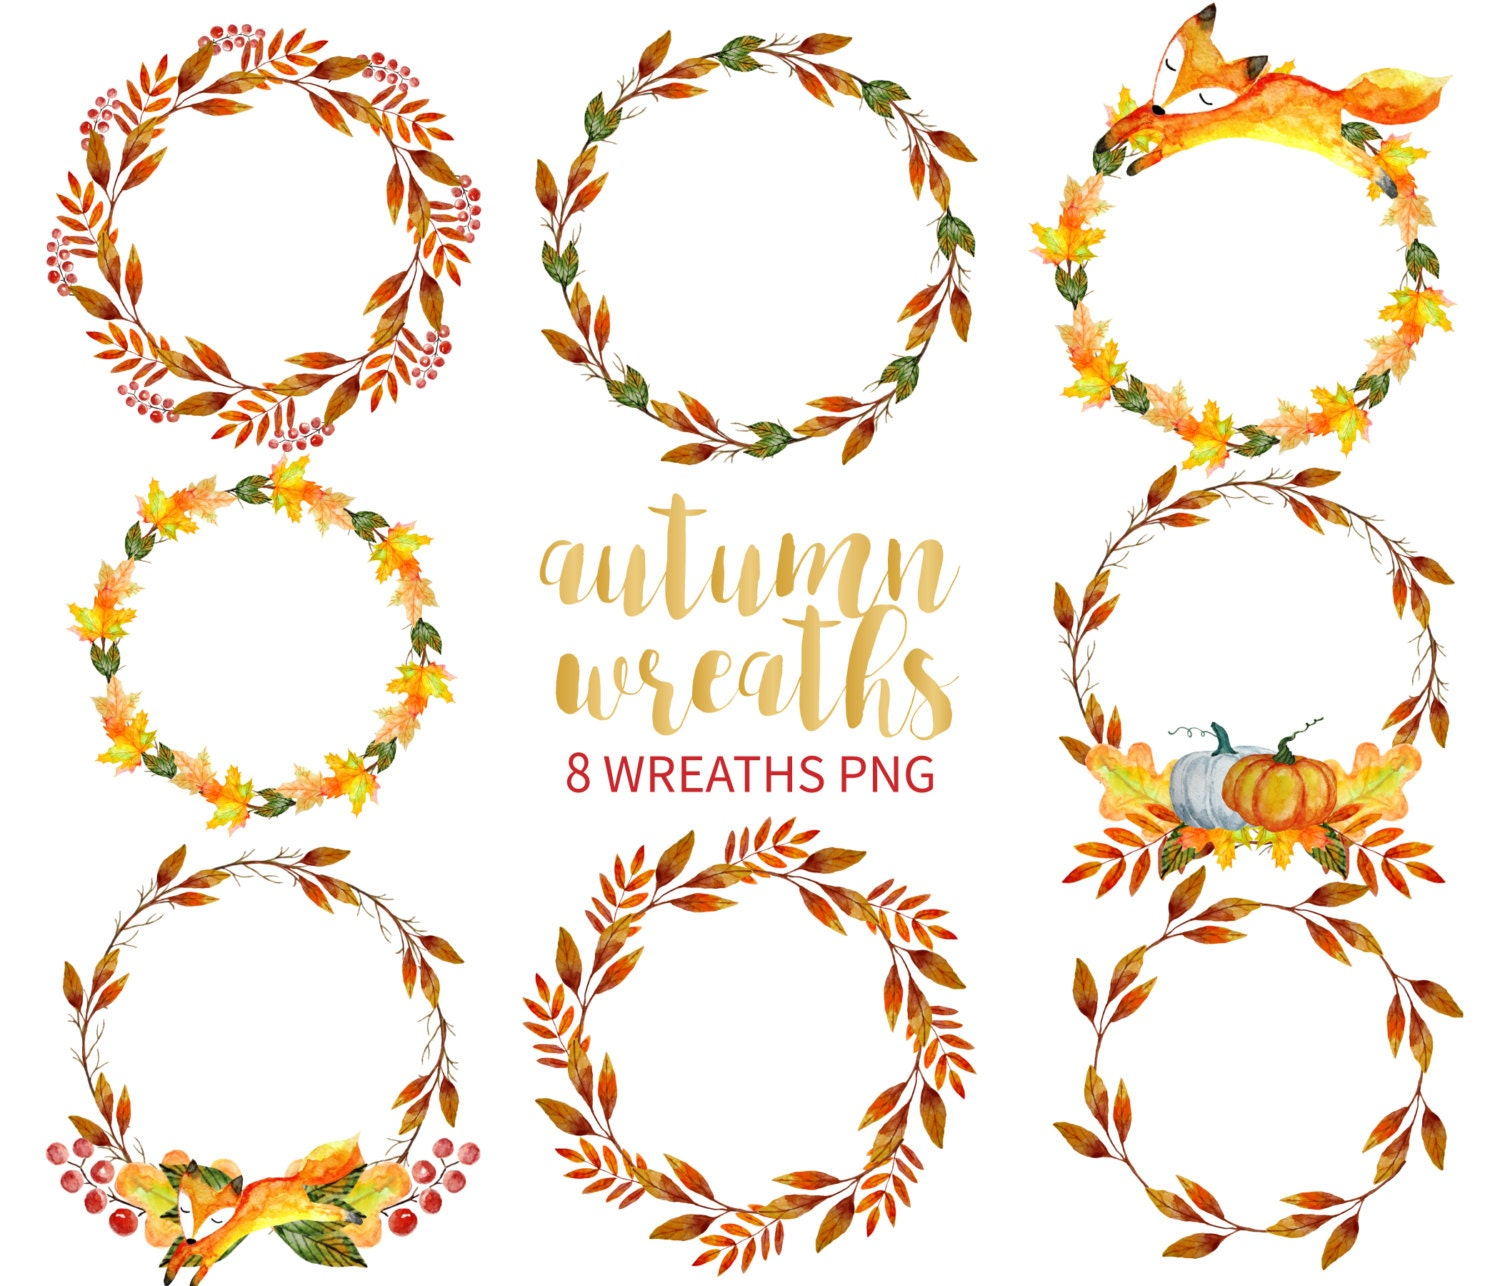 autumn wreath clipart  watercolor wreath clipart  hand greek clip art illustrations greek clipart